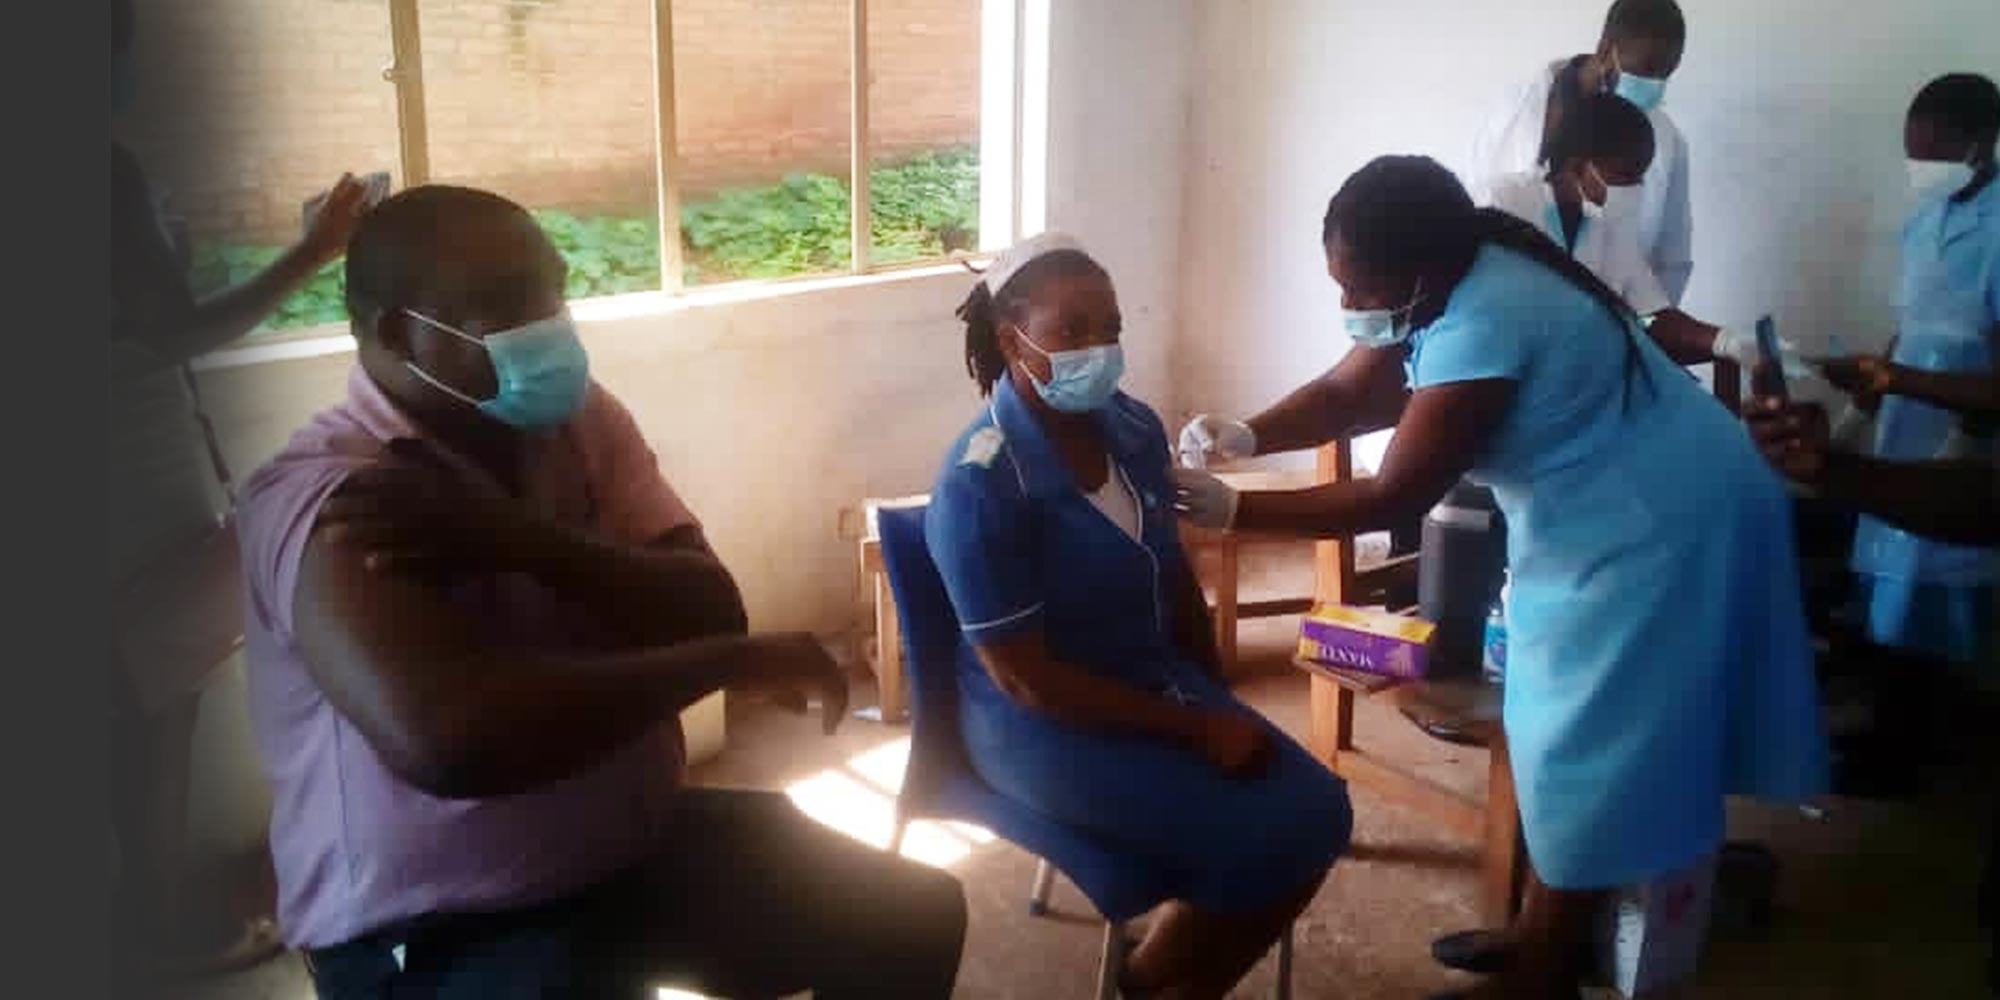 No VIP treatment: Malawi aims for an equitable COVID-19 vaccine roll-out